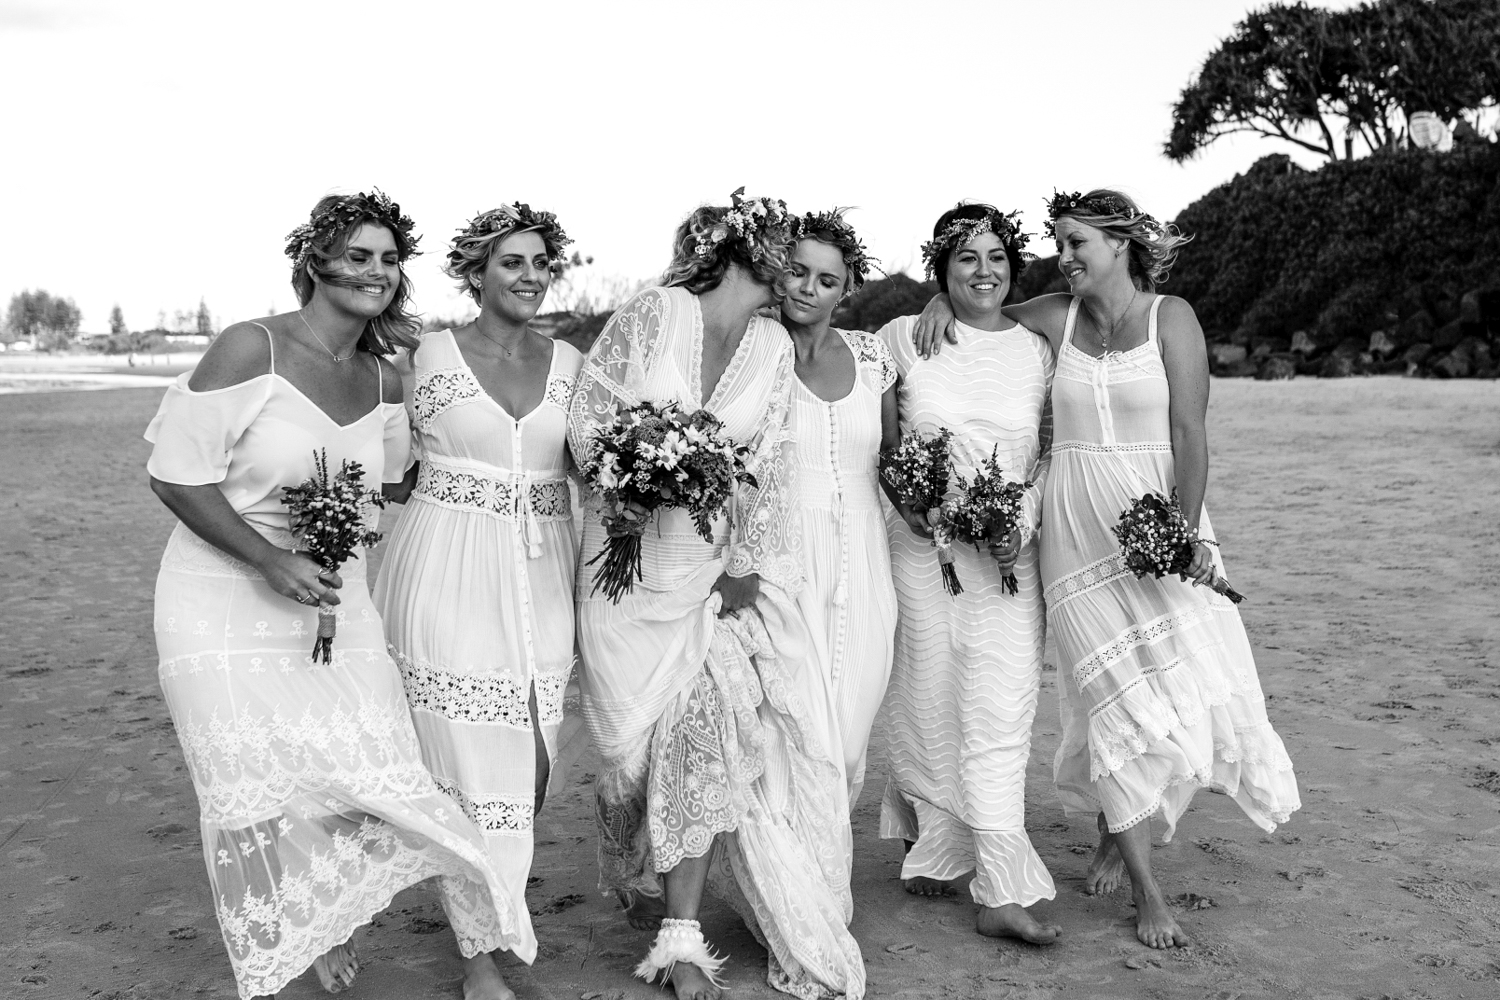 bride kisses her maid of honour as they stroll with bridesmaids on the beach.